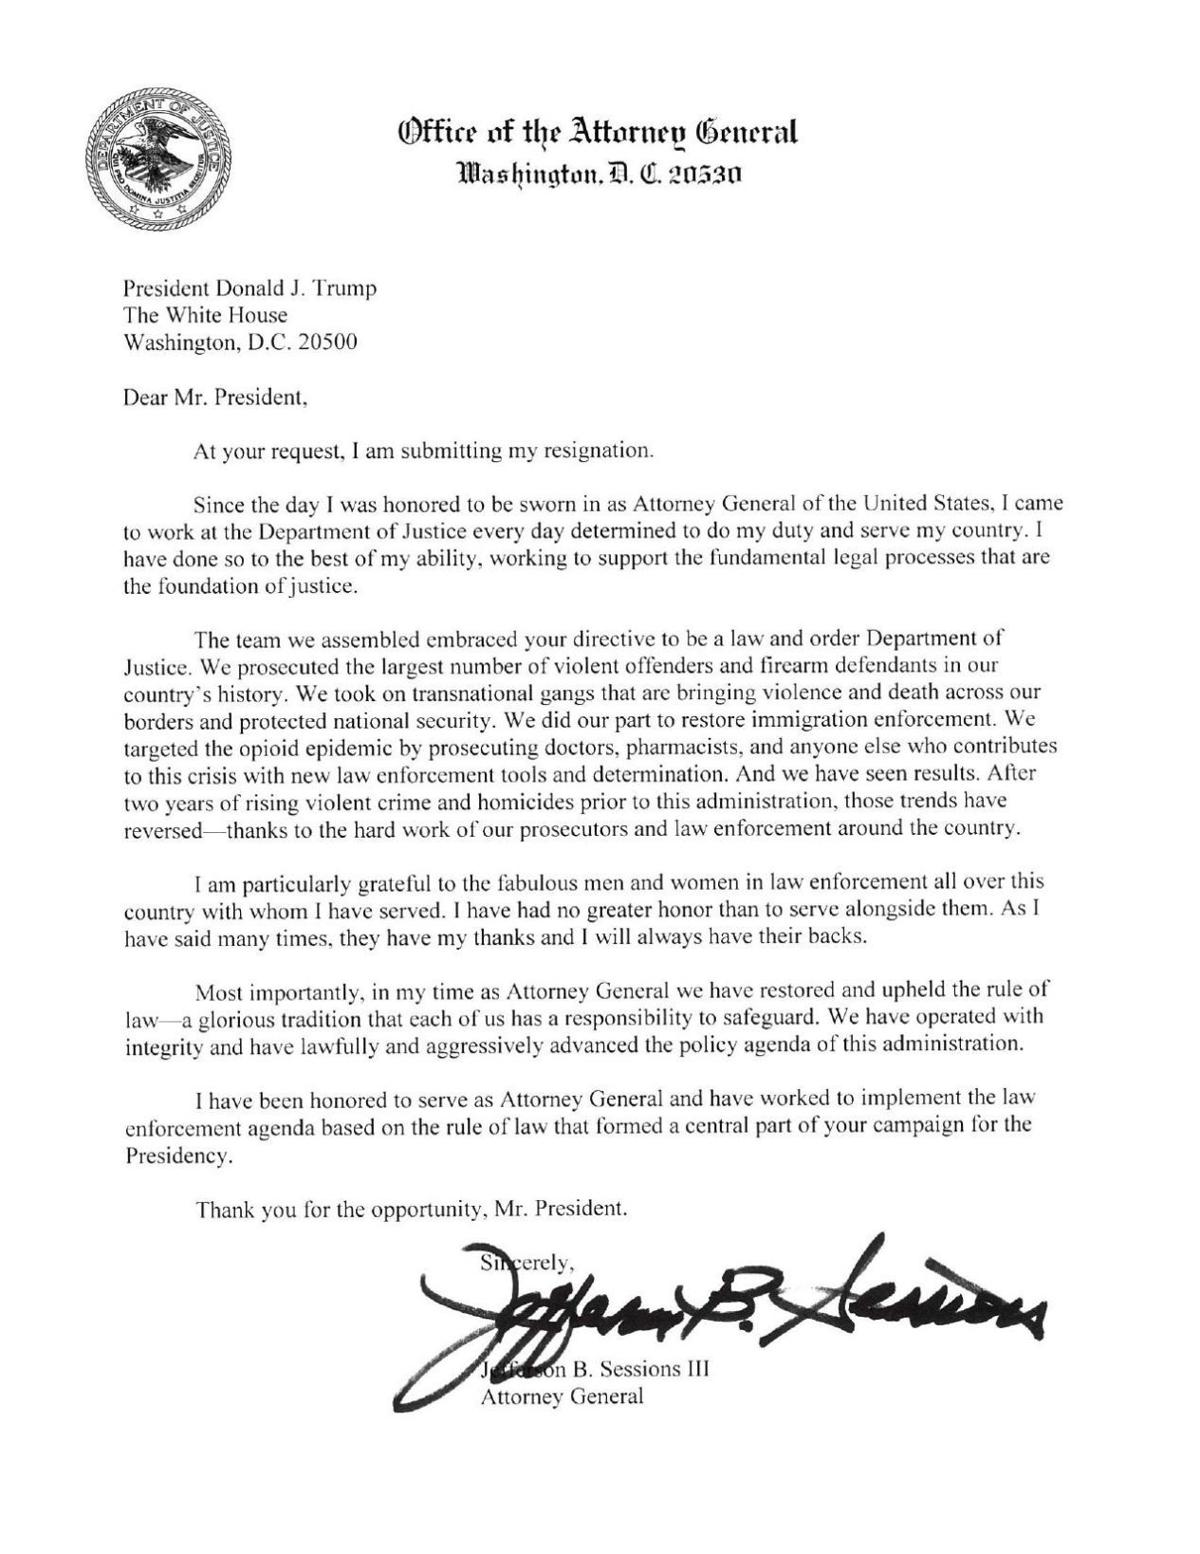 Sessions\' resignation letter | | newsadvance.com